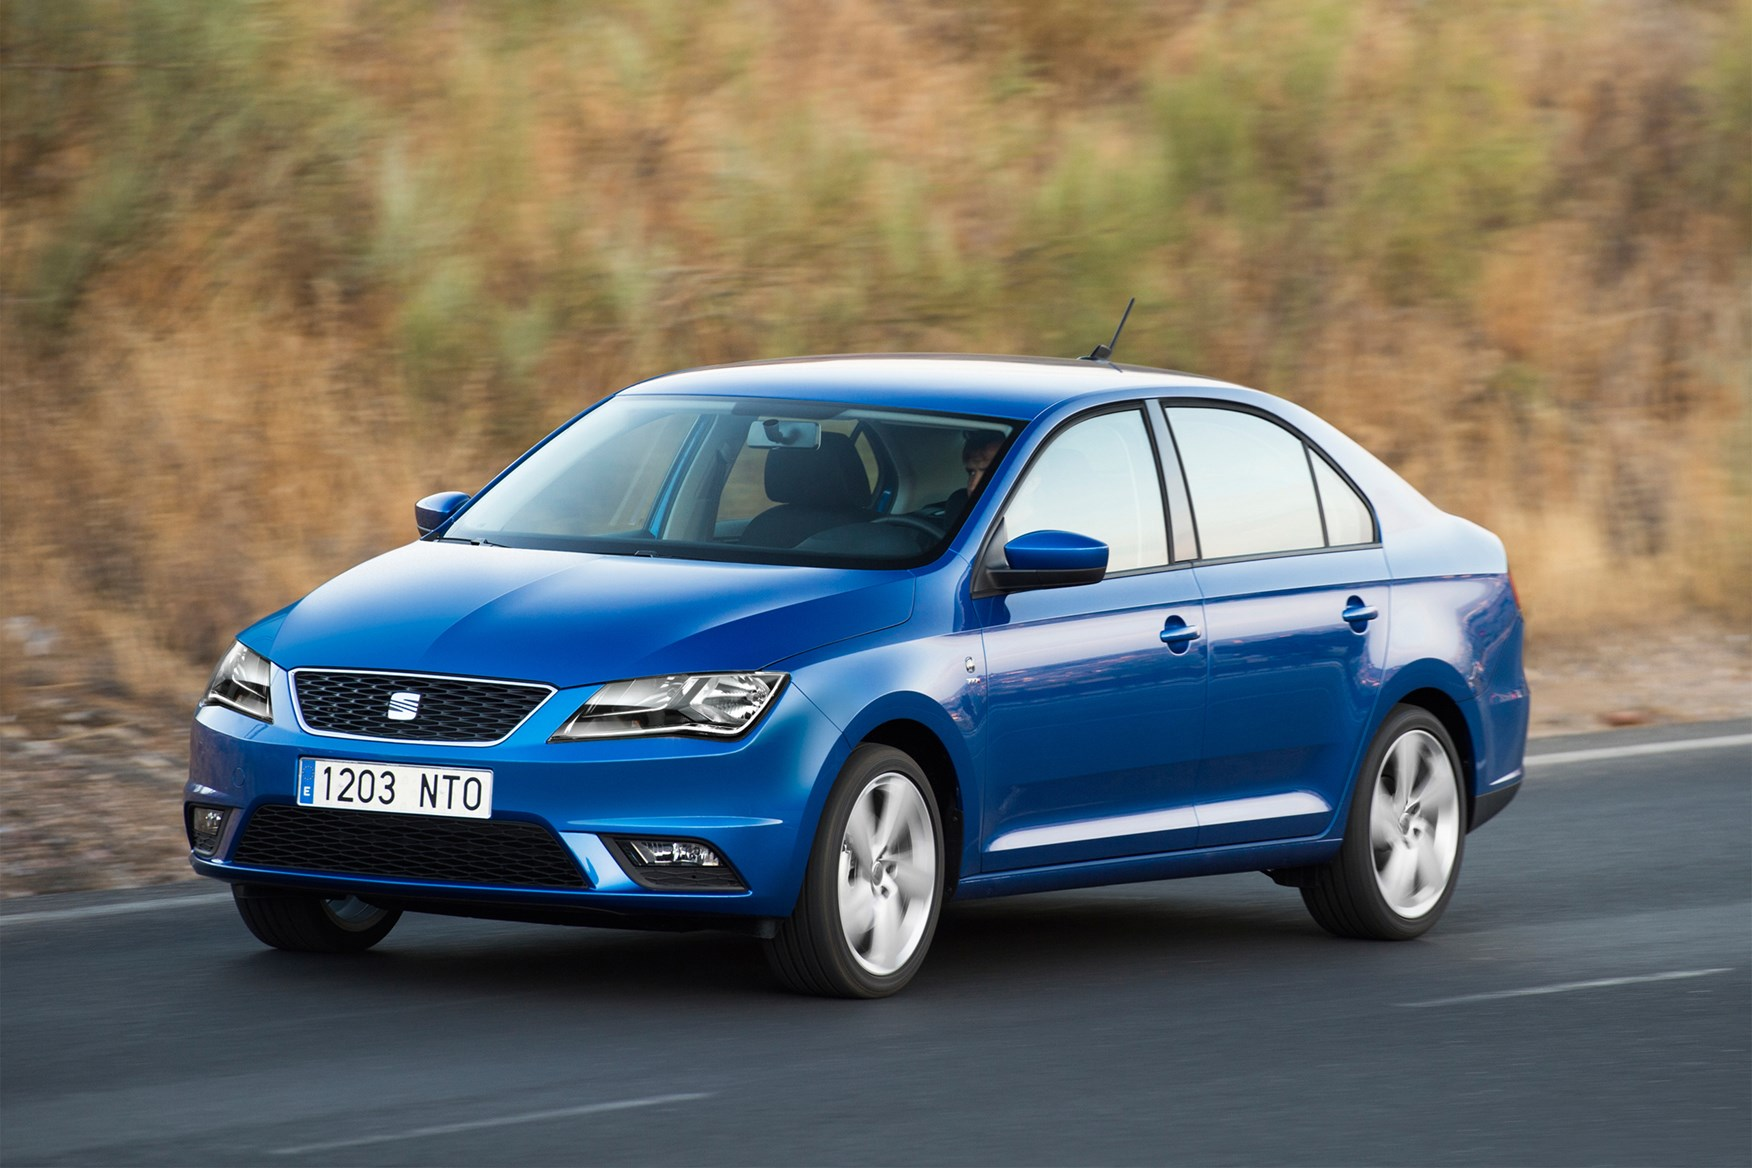 seat toledo hatchback review 2013 parkers. Black Bedroom Furniture Sets. Home Design Ideas